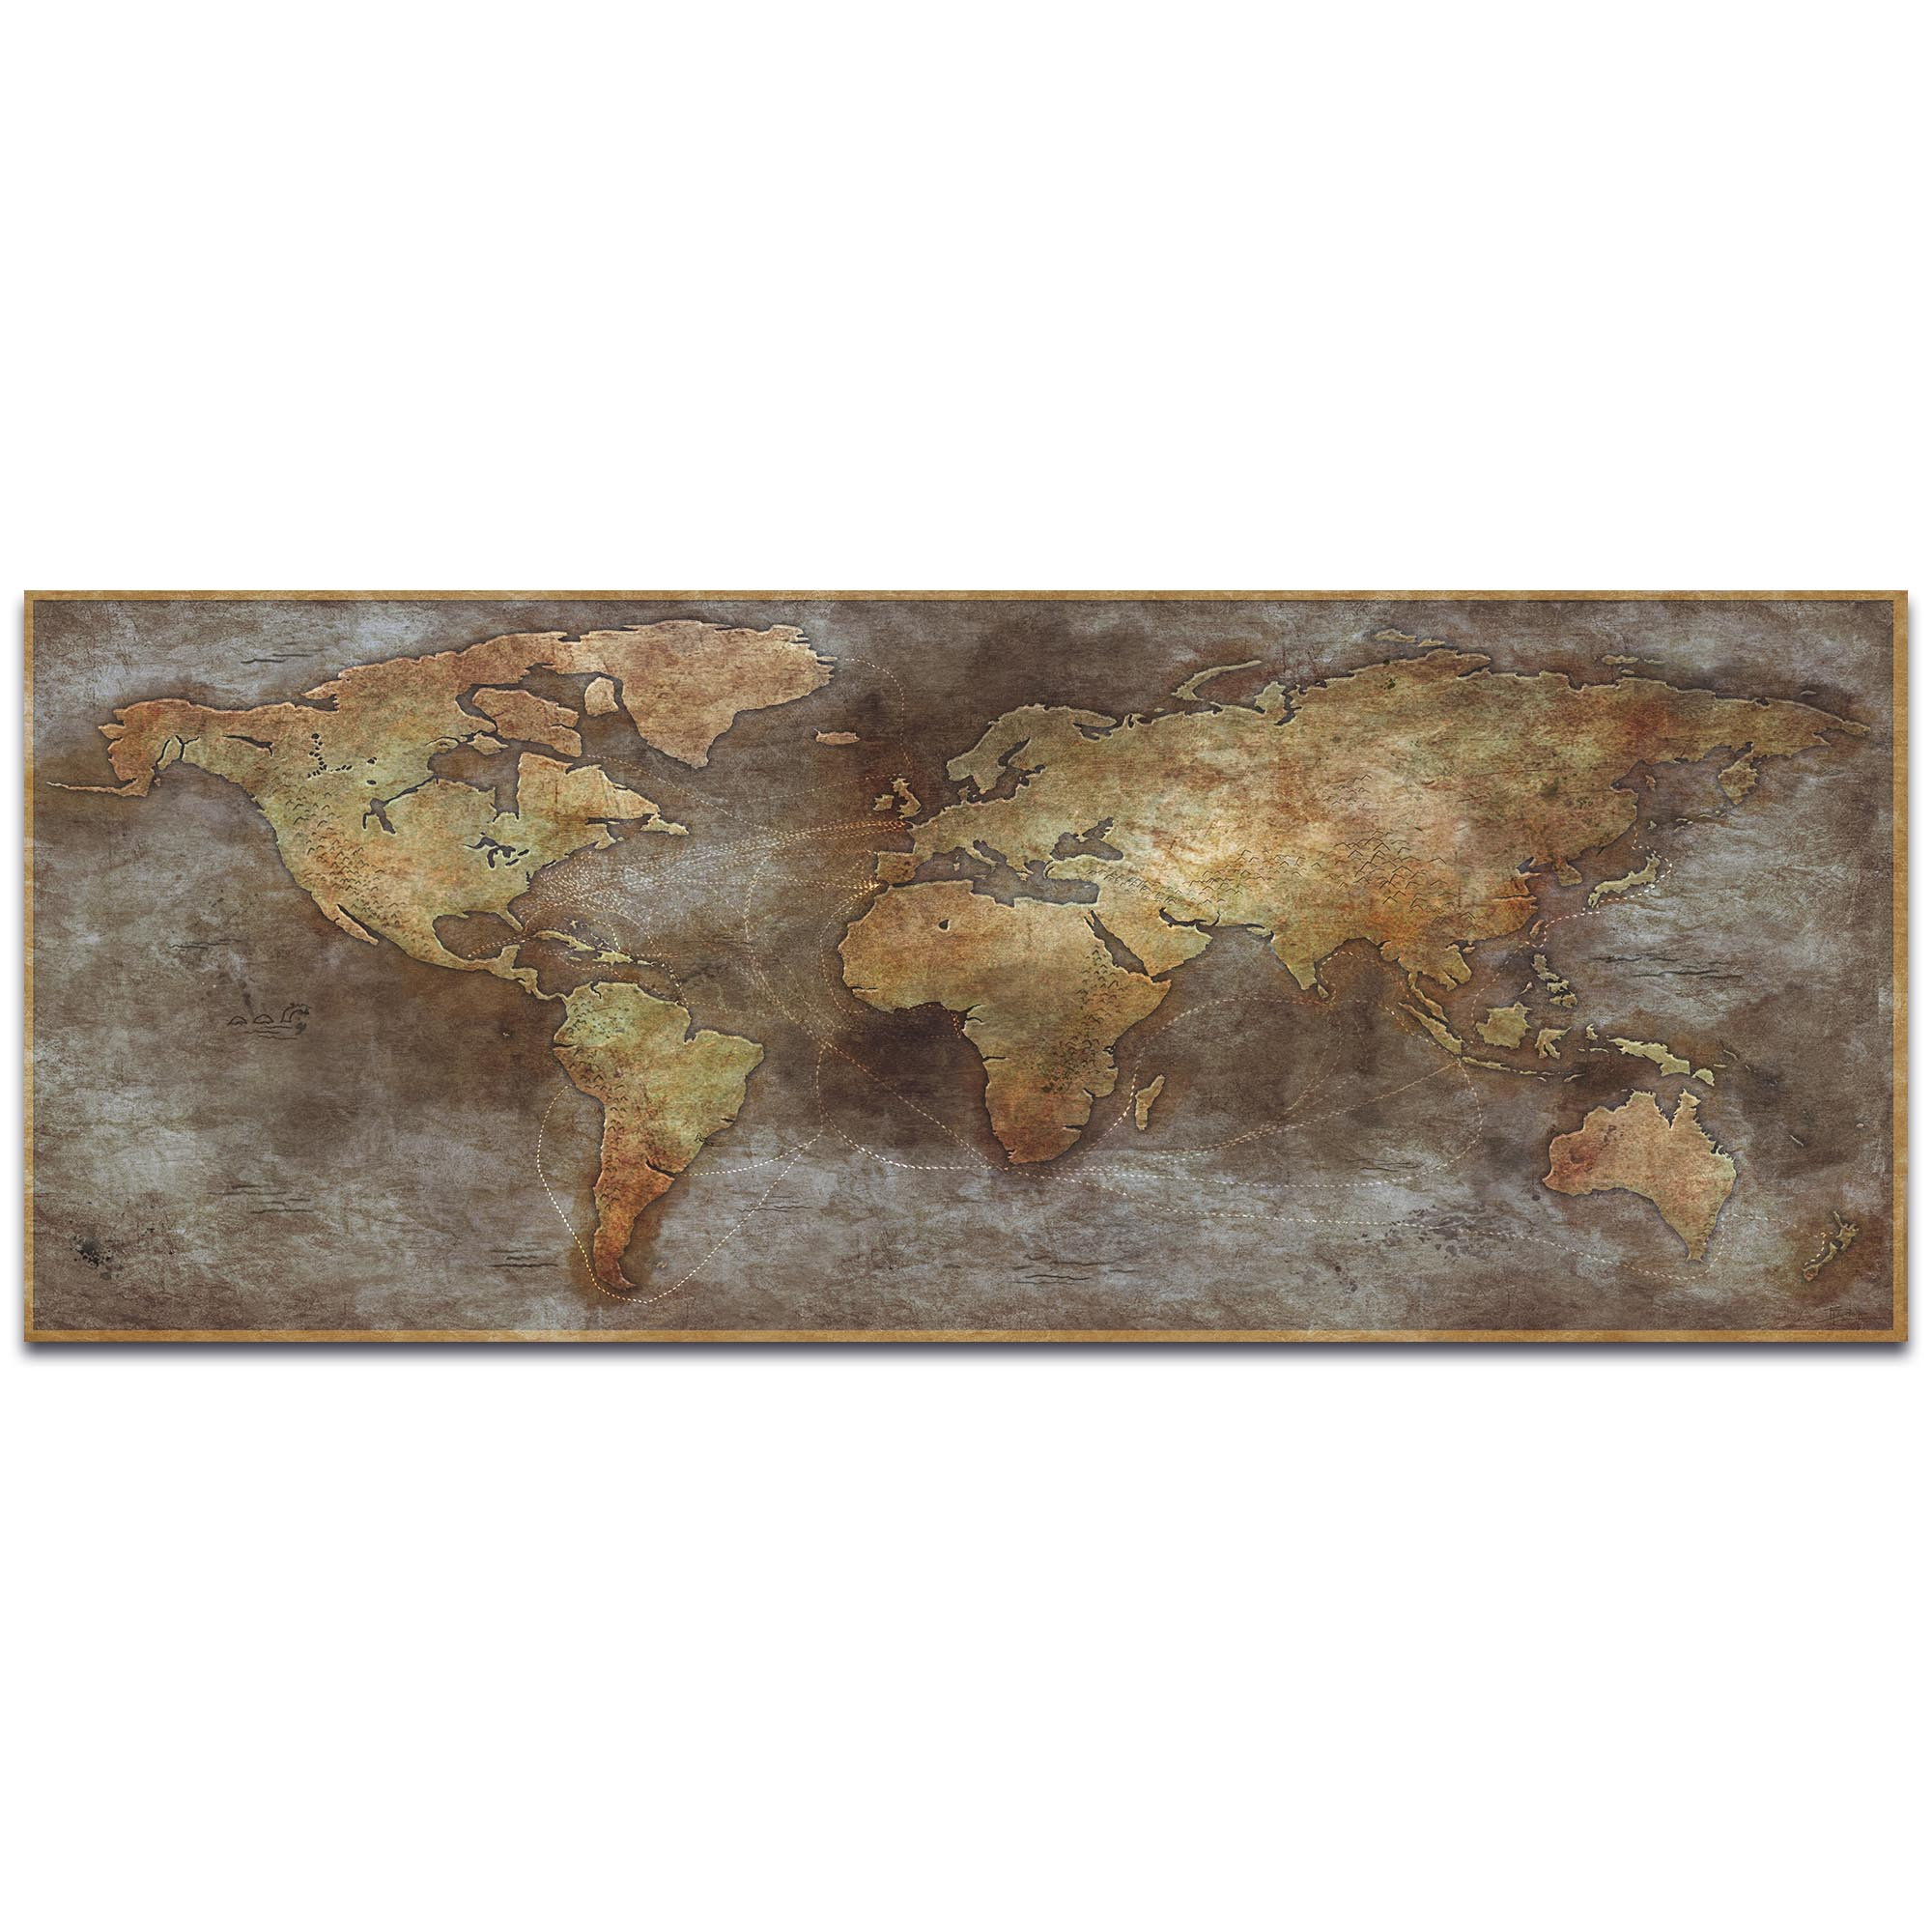 World Map Art '1800s Trade Routes Map' - Old World Wall Decor on Metal or Acrylic